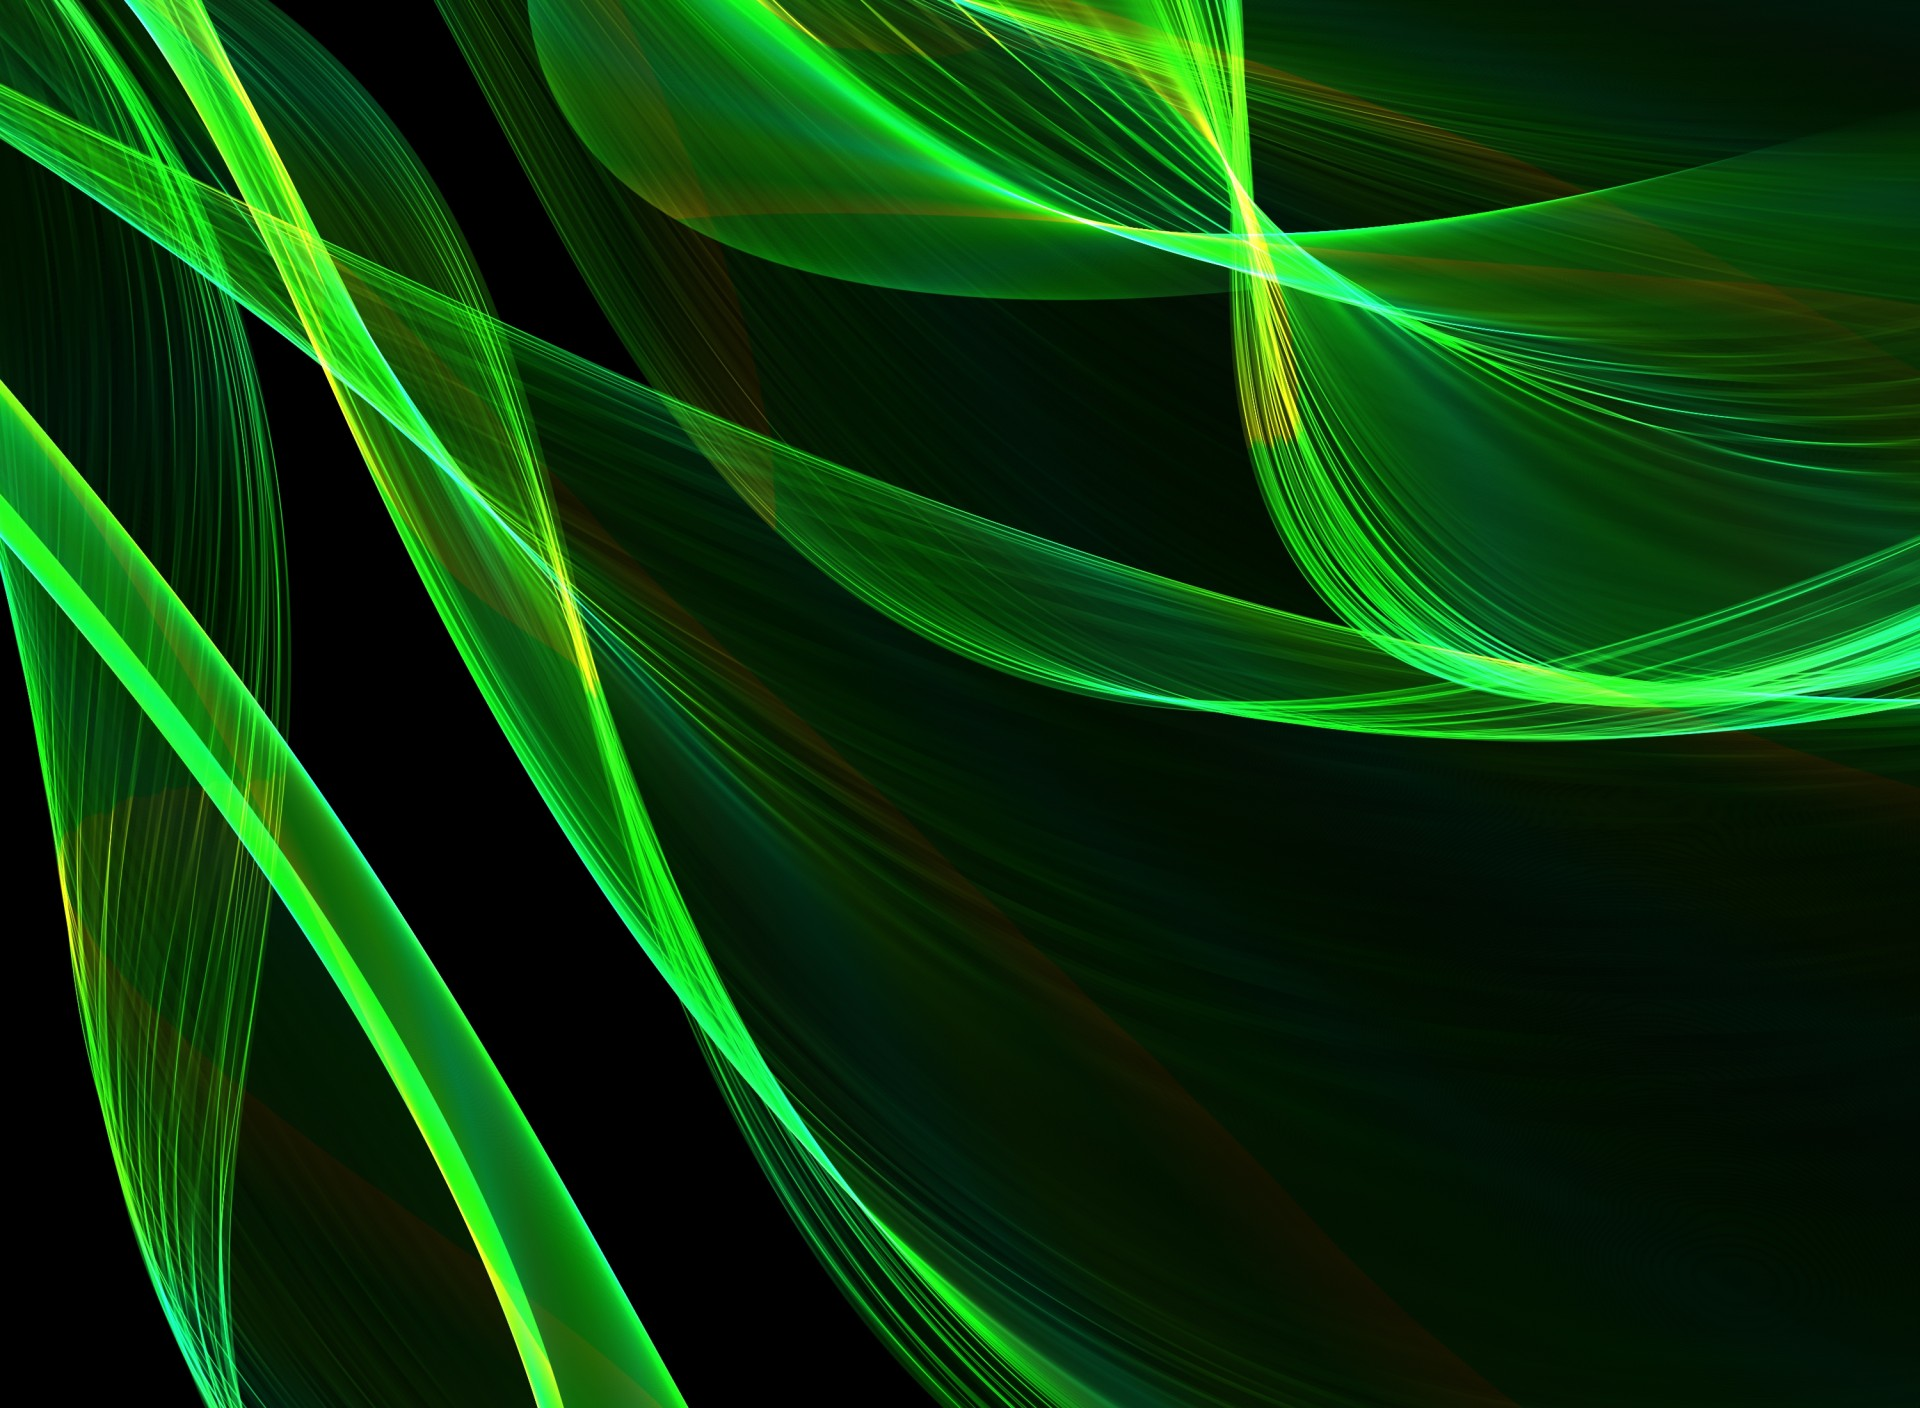 Spiral Wallpaper 3d Green Ribbon Background Free Stock Photo Public Domain